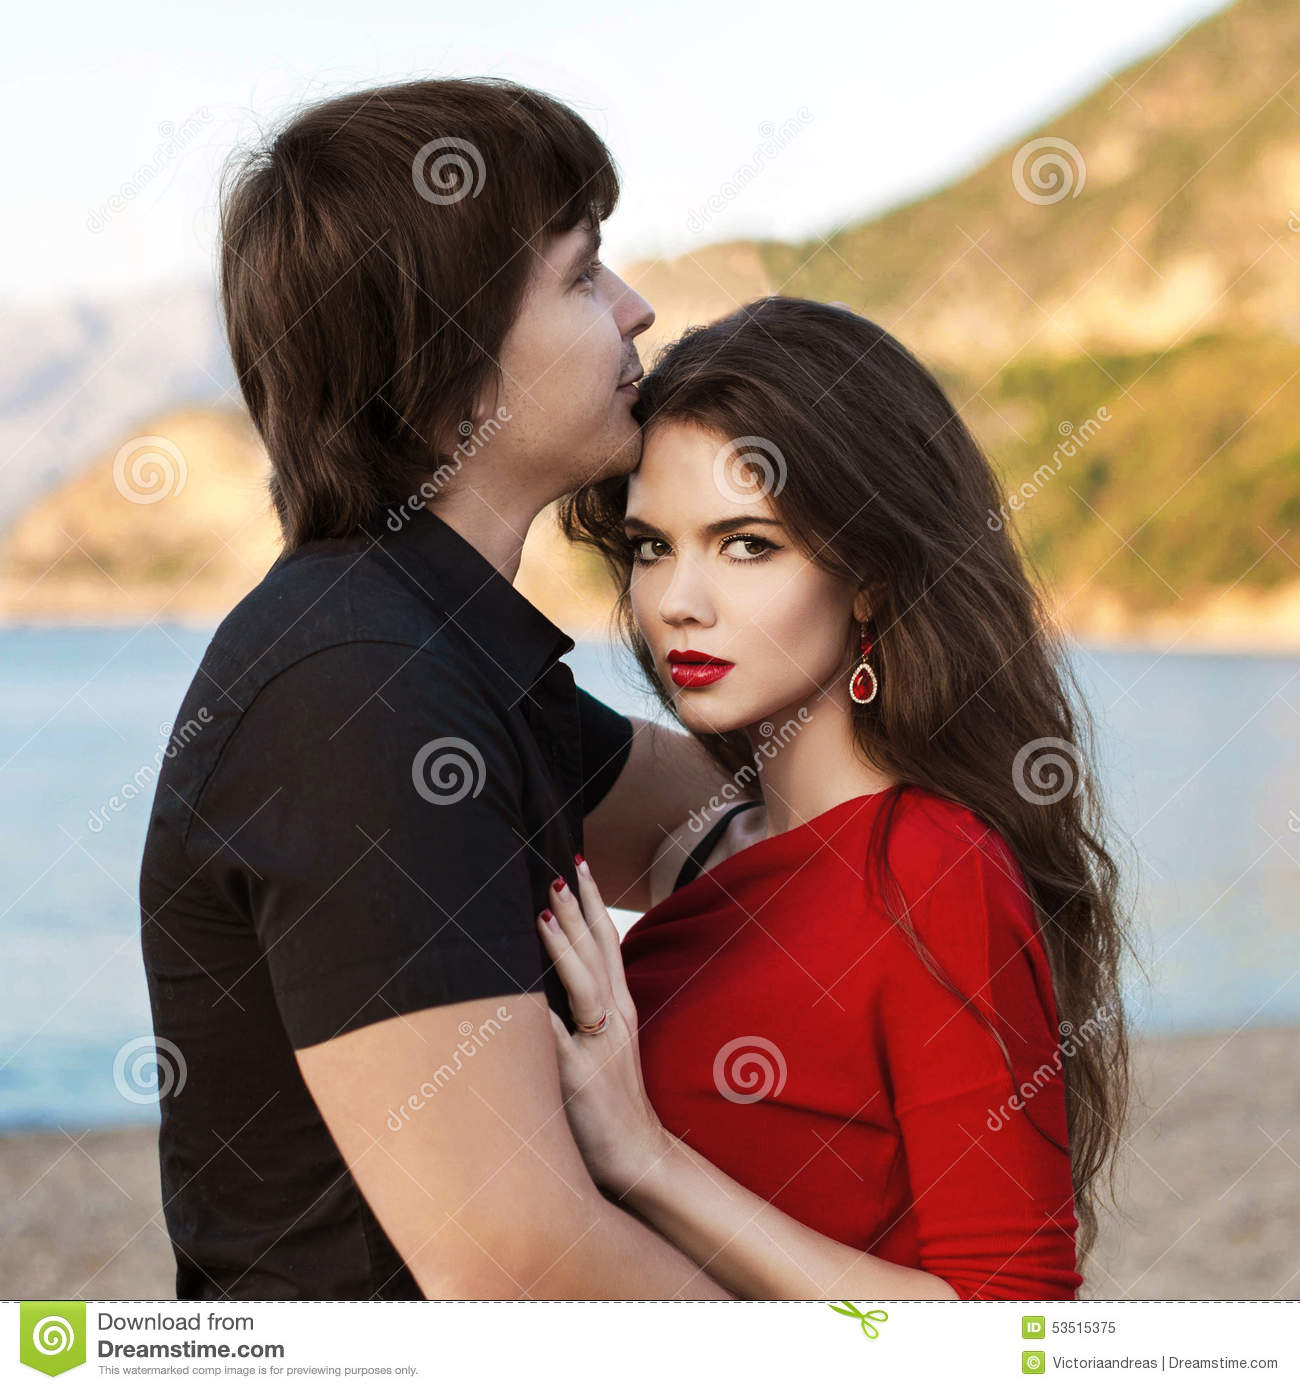 Romantic Couple In Love At Beach Sunset. Newlywed Happy